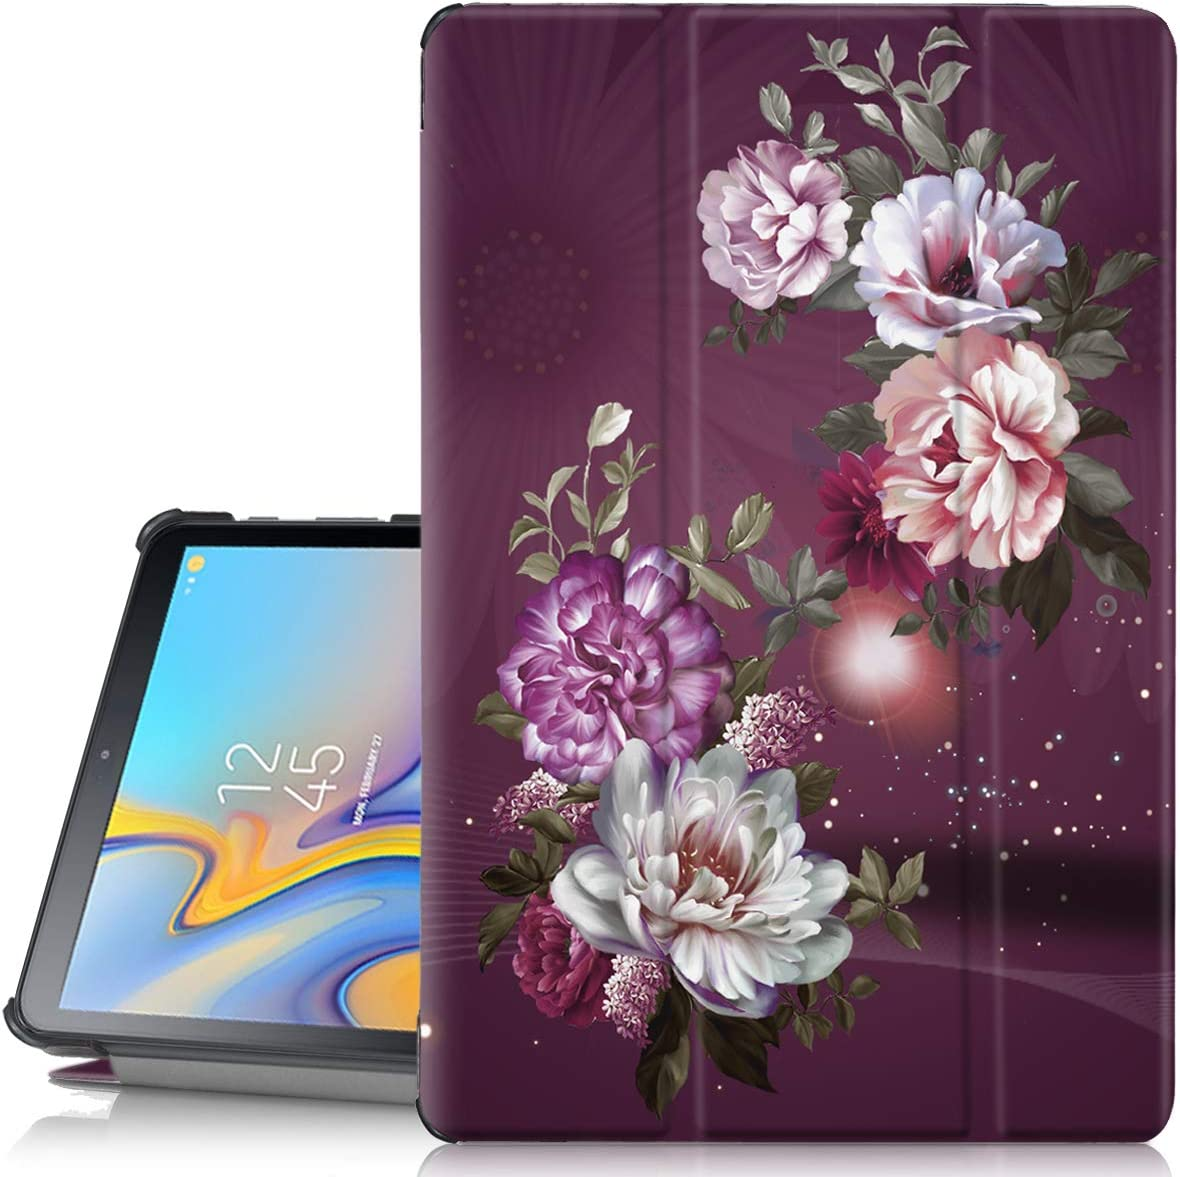 Hocase Galaxy Tab A 10.5 Case, PU Leather Folio Smart Case w/Unique Flower Design, Auto Sleep/Wake Feature, Microfiber Lining Hard Back Cover for SM-T590/SM-T595 - Burgundy Flowers